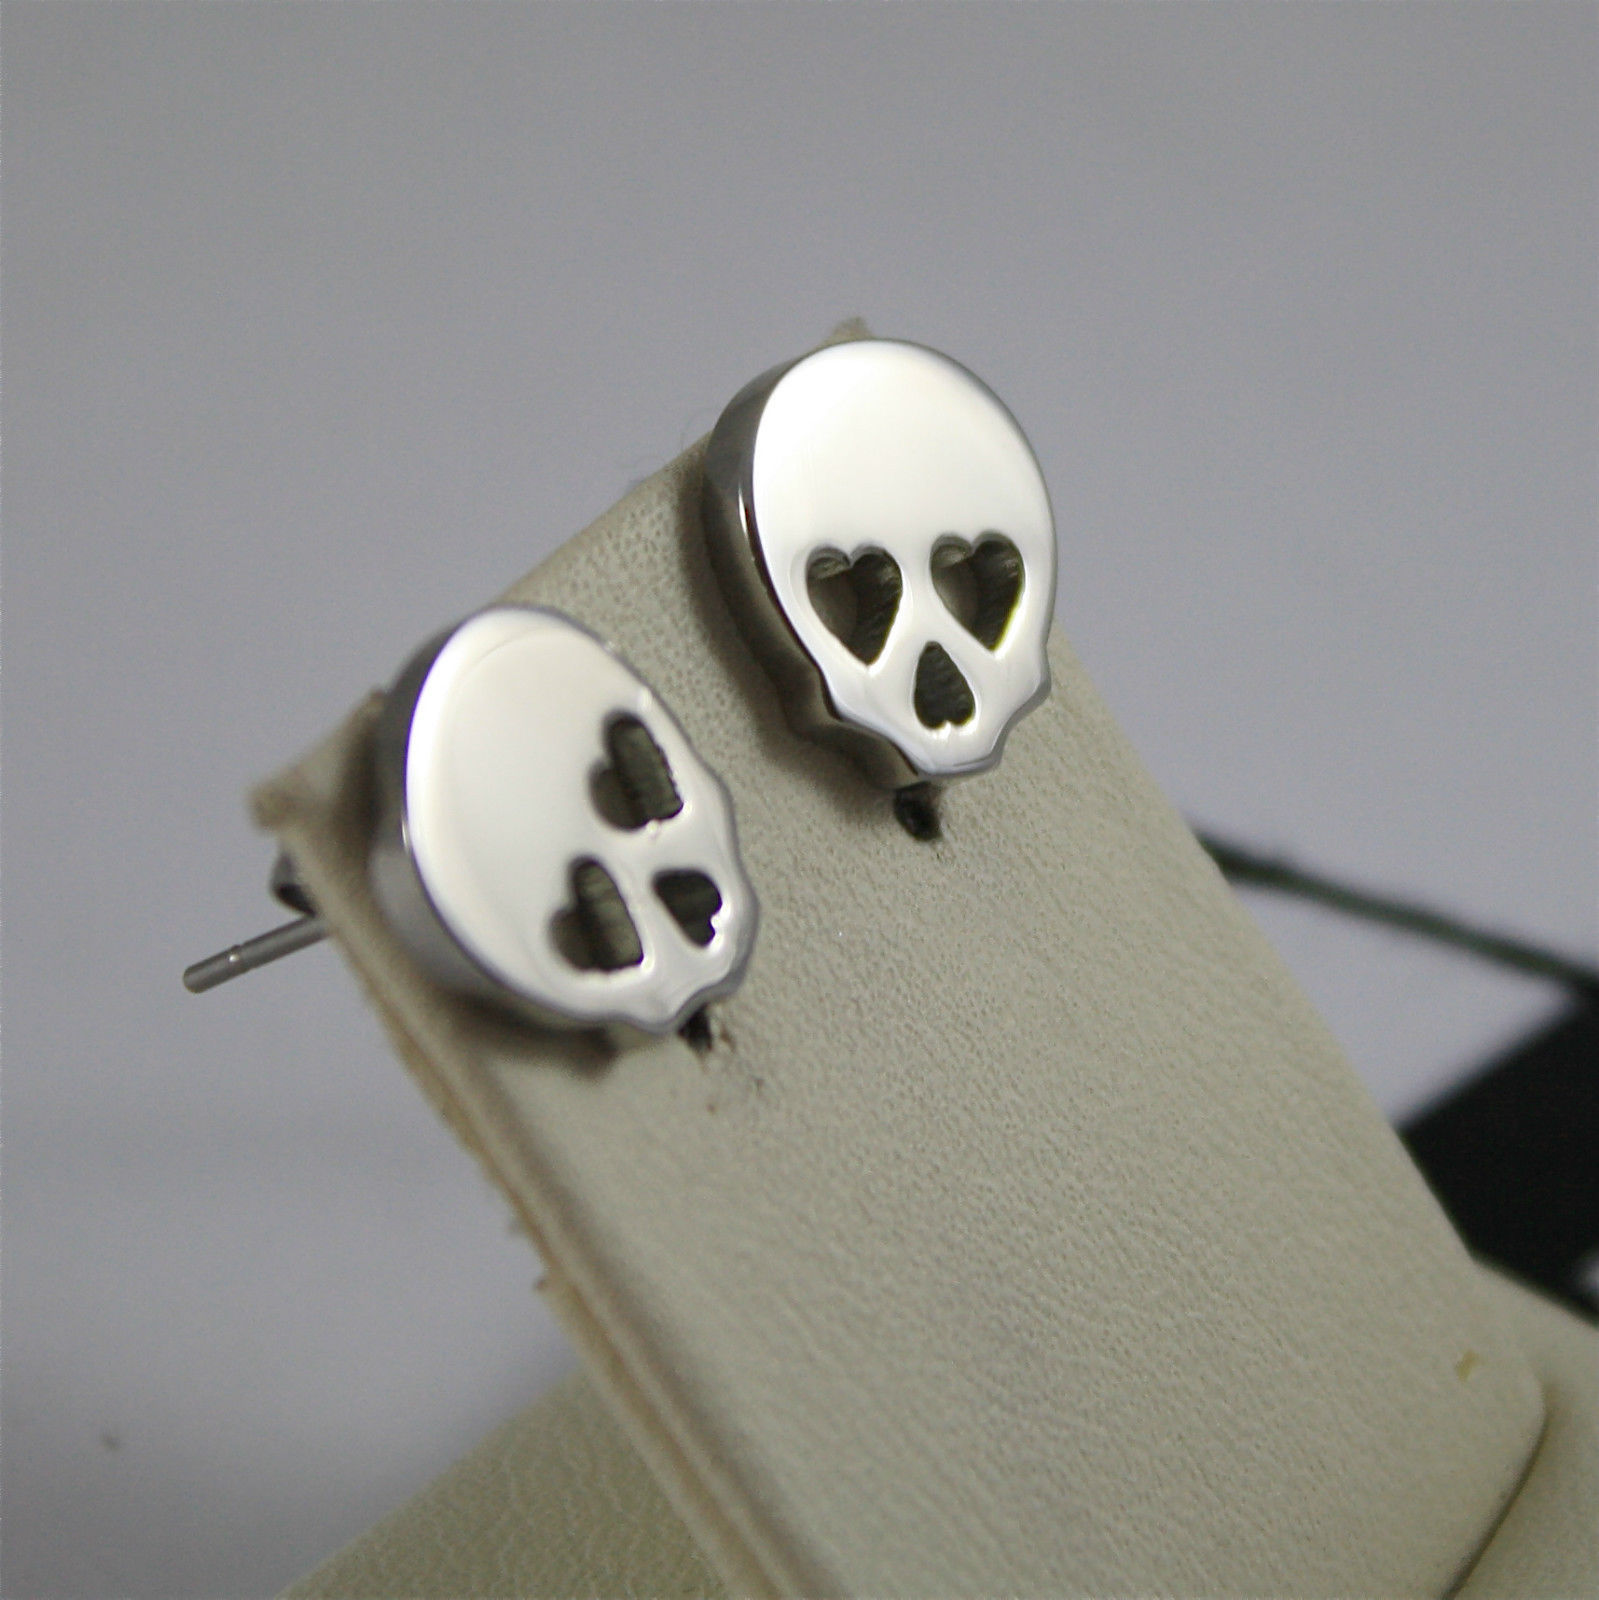 S'AGAPO' EARRINGS, 316L STEEL, SKULLS WHIT HEARTS IN THE EYES, FACETED CRYSTALS.